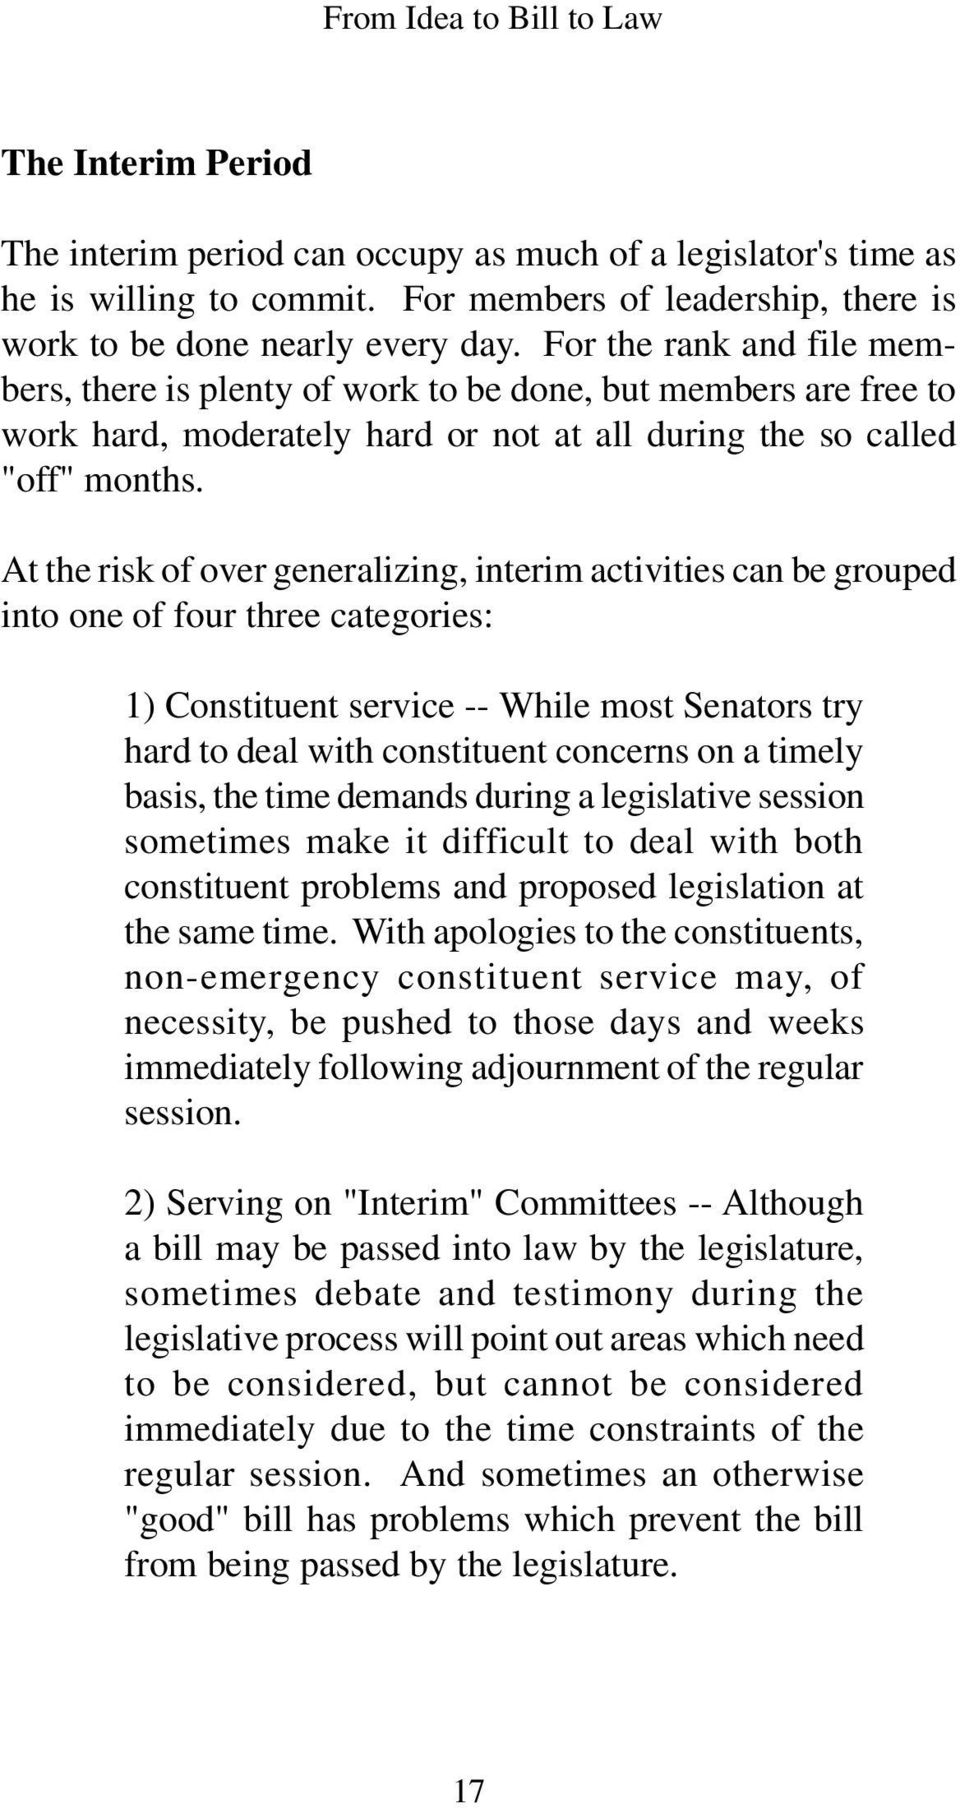 At the risk of over generalizing, interim activities can be grouped into one of four three categories: 1) Constituent service -- While most Senators try hard to deal with constituent concerns on a